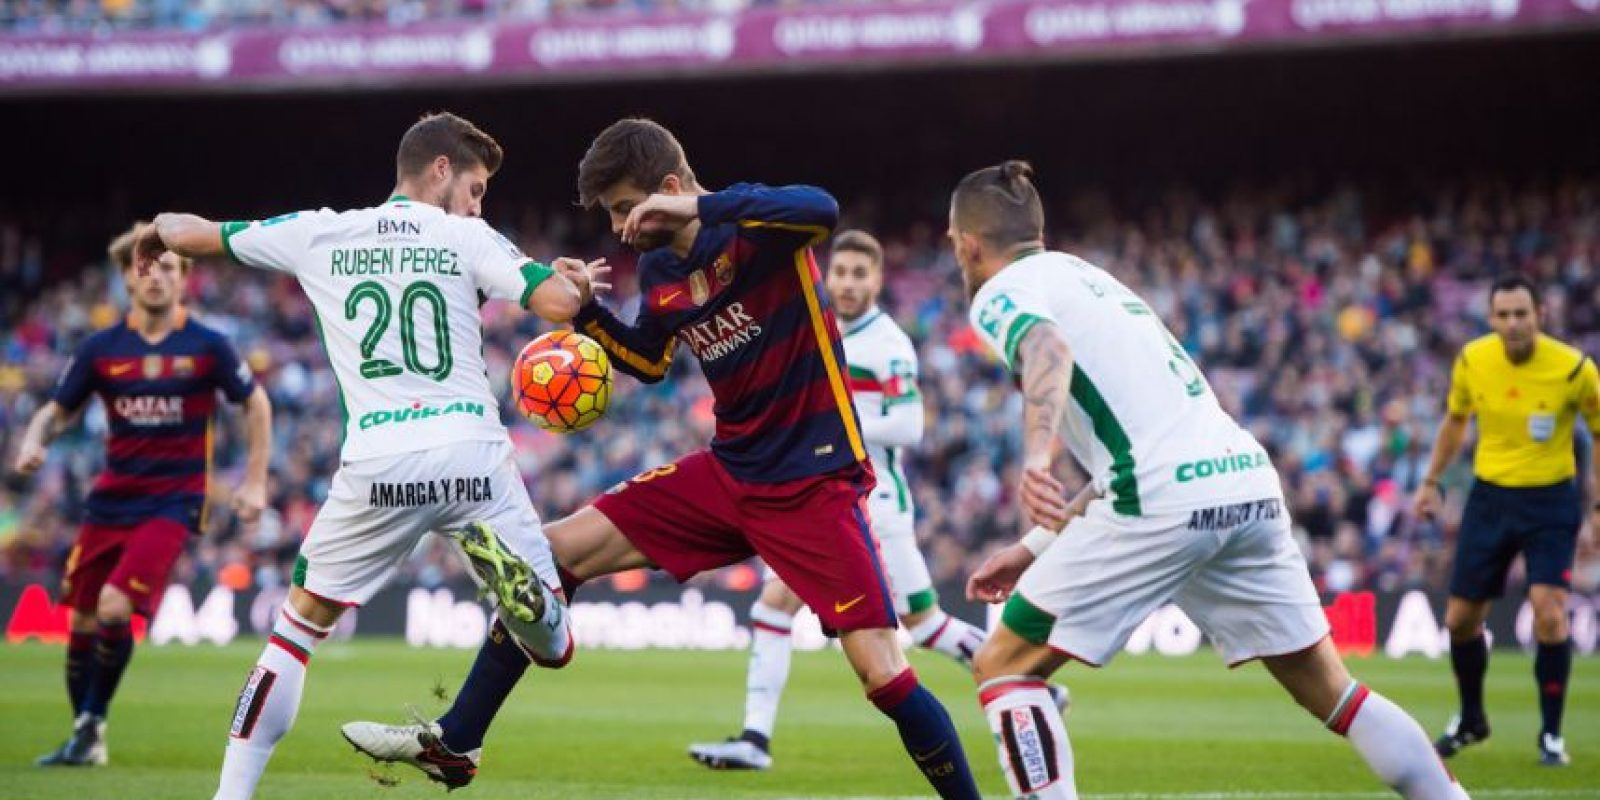 LIGA BBVA: 23 de abril / Barcelona vs. Sporting Gijón Foto: Getty Images